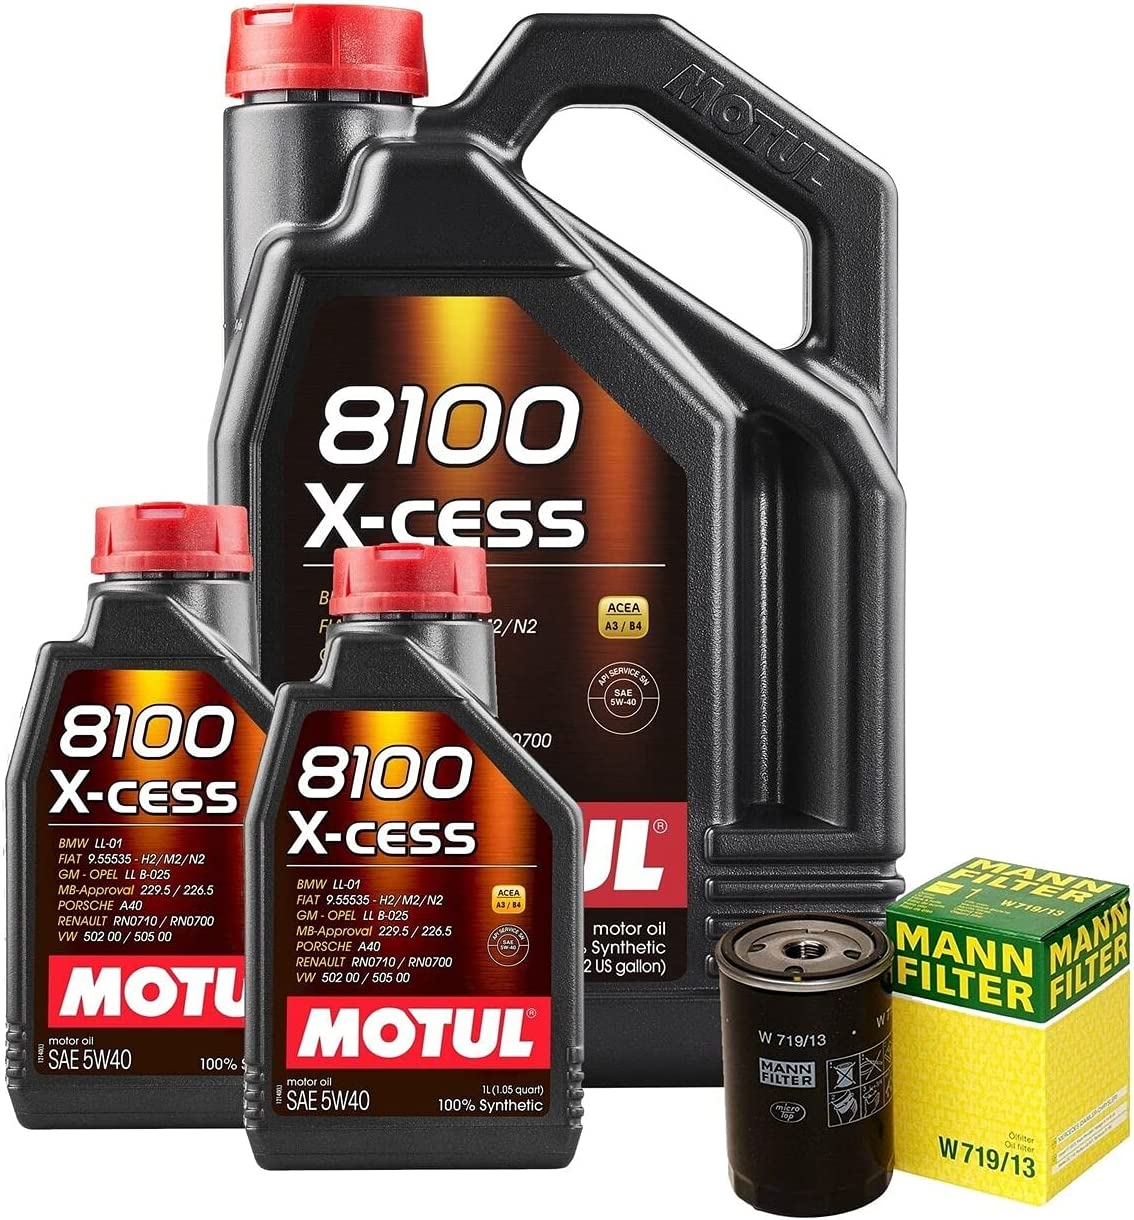 7L 8100 X-CESS 5W40 Filter Engine Oil Motor Credence W124 Department store 300E Change kit